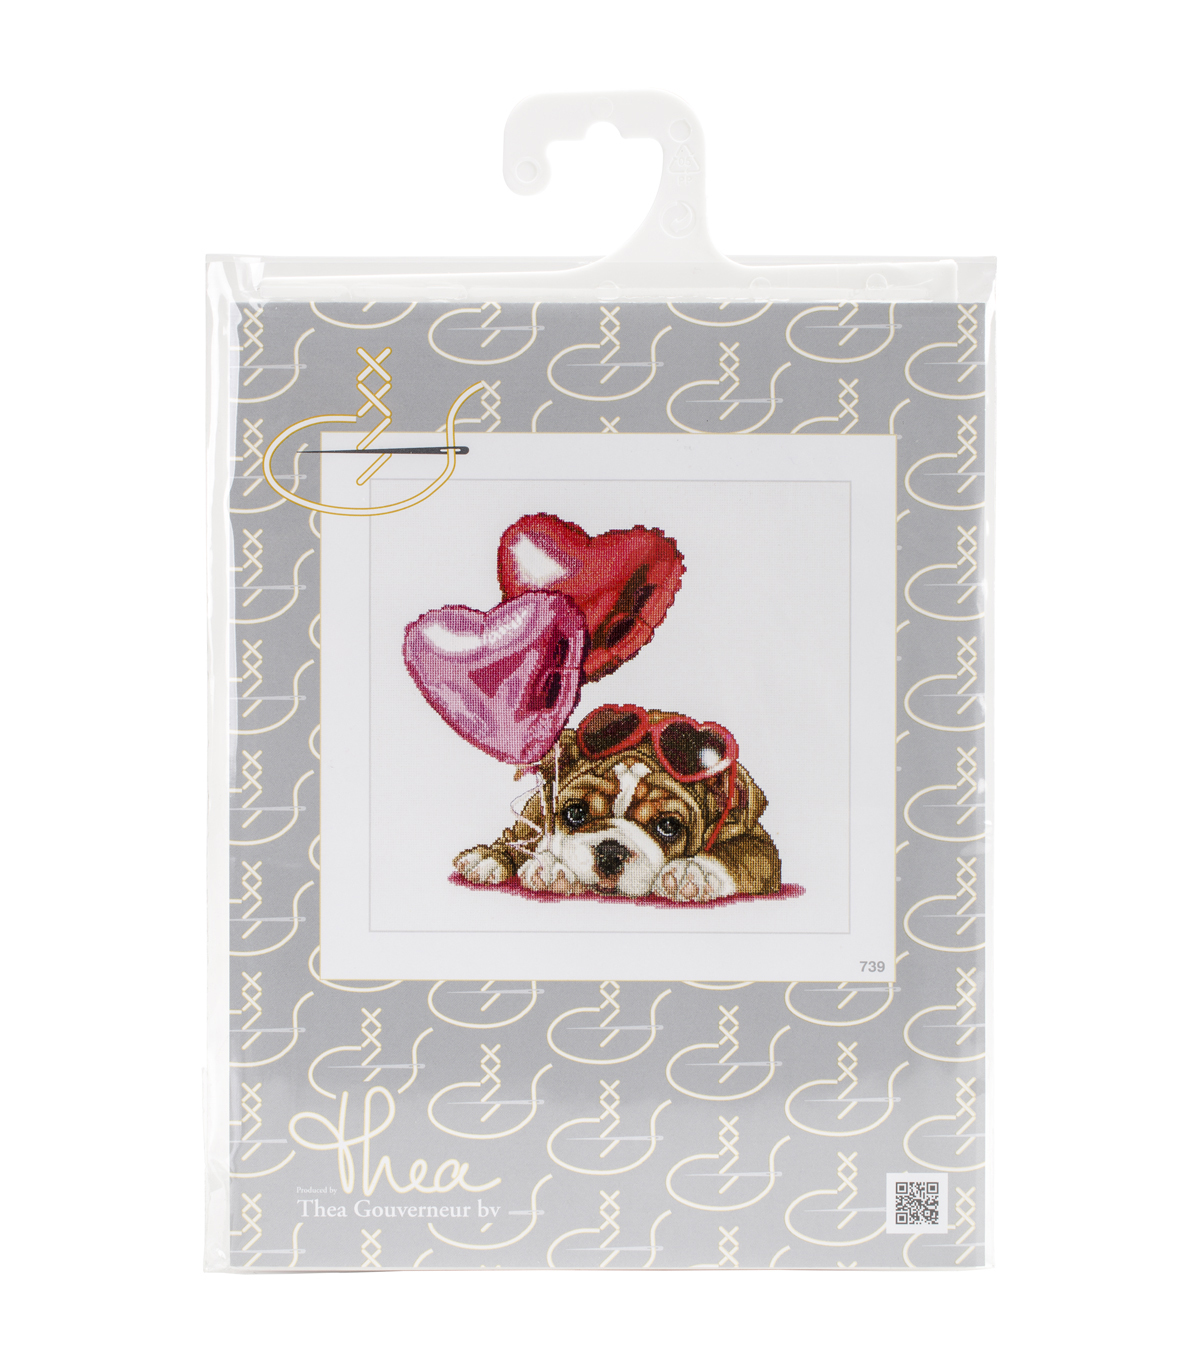 Thea Gouverneur Valentine\u0027s Puppy On Aida Counted Cross Stitch Kit